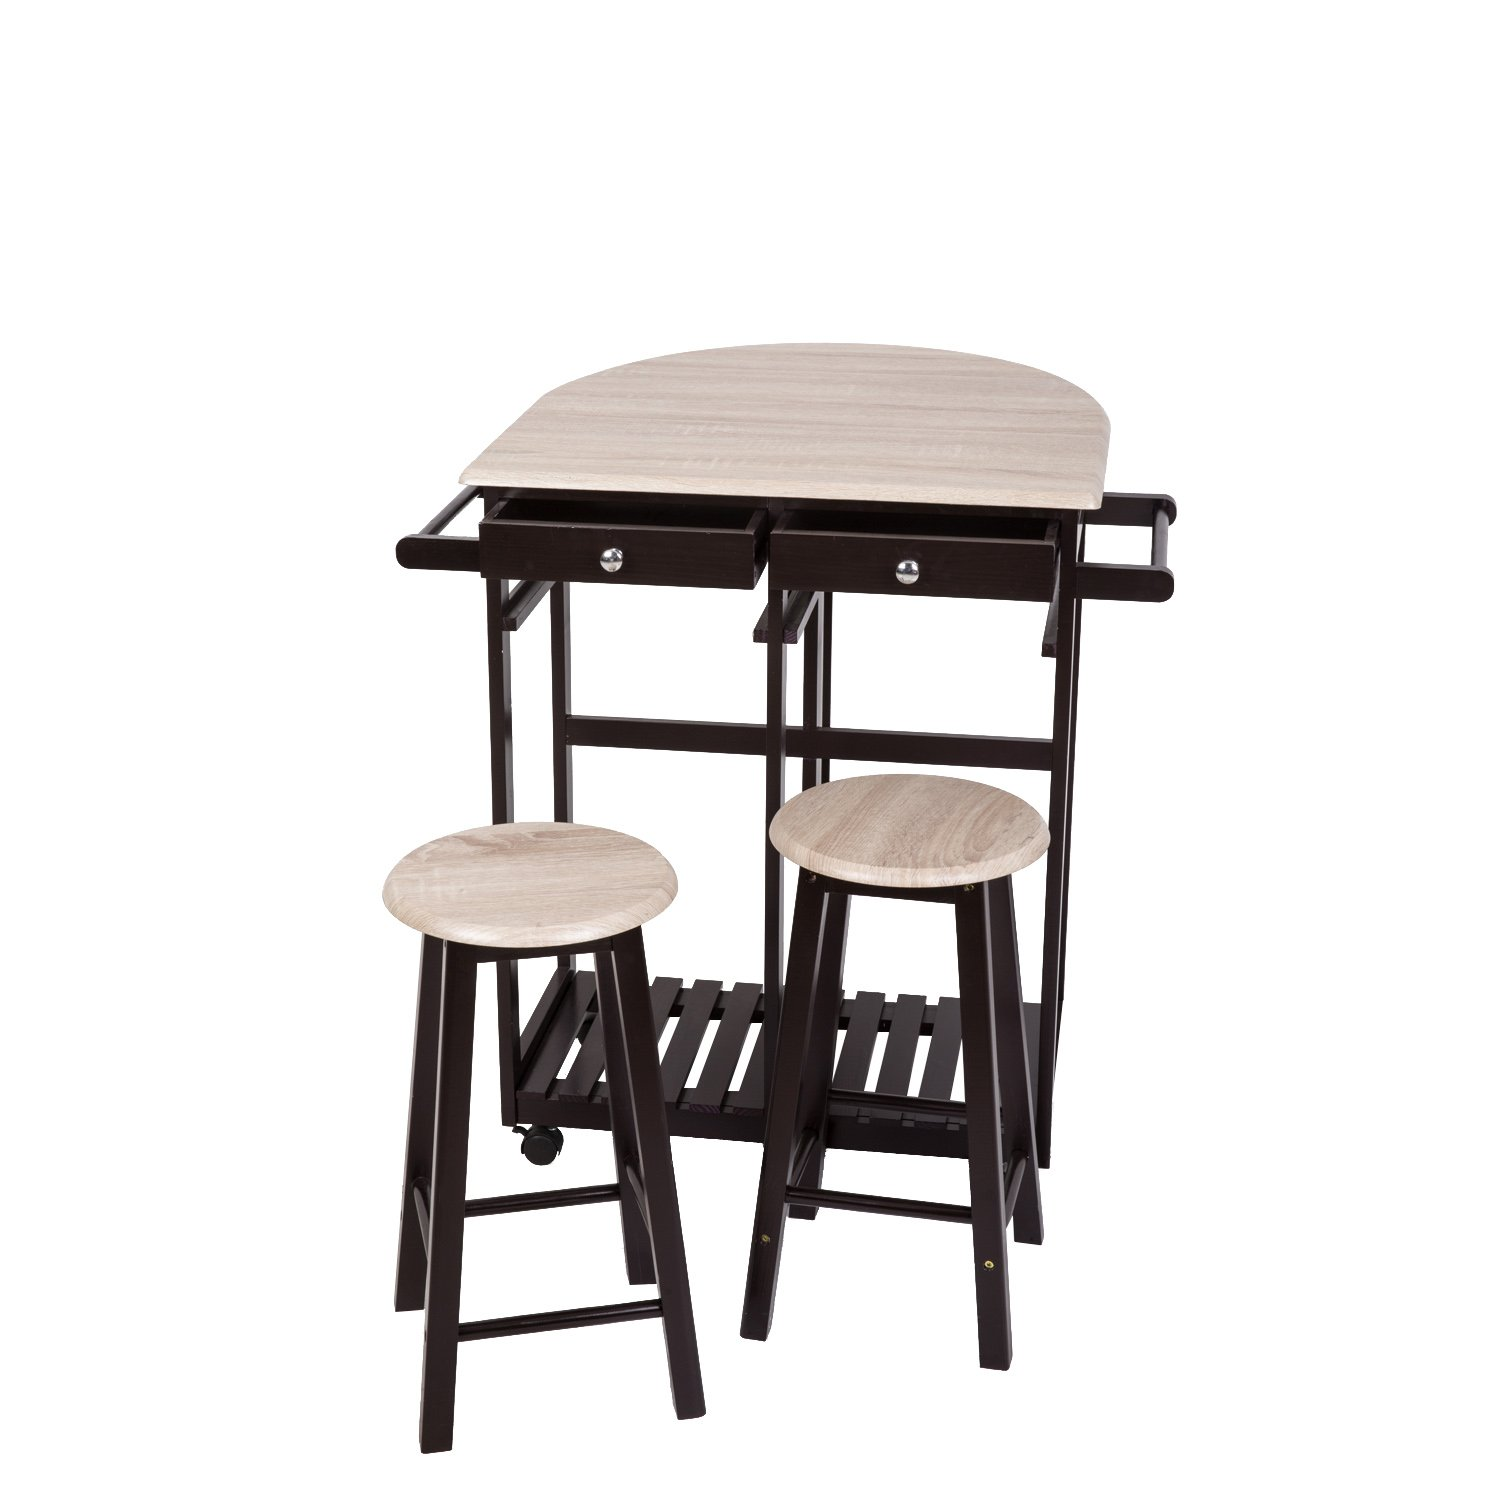 Peach Tree 3-Piece Table Dining Set Home Kitchen Furniture Wooden Rolling Kitchen Trolley Cart Island Foldable Table Drop Leaf, Breakfast Bar, Dining Table Set w/2 Stools by Kinsunny (Image #1)